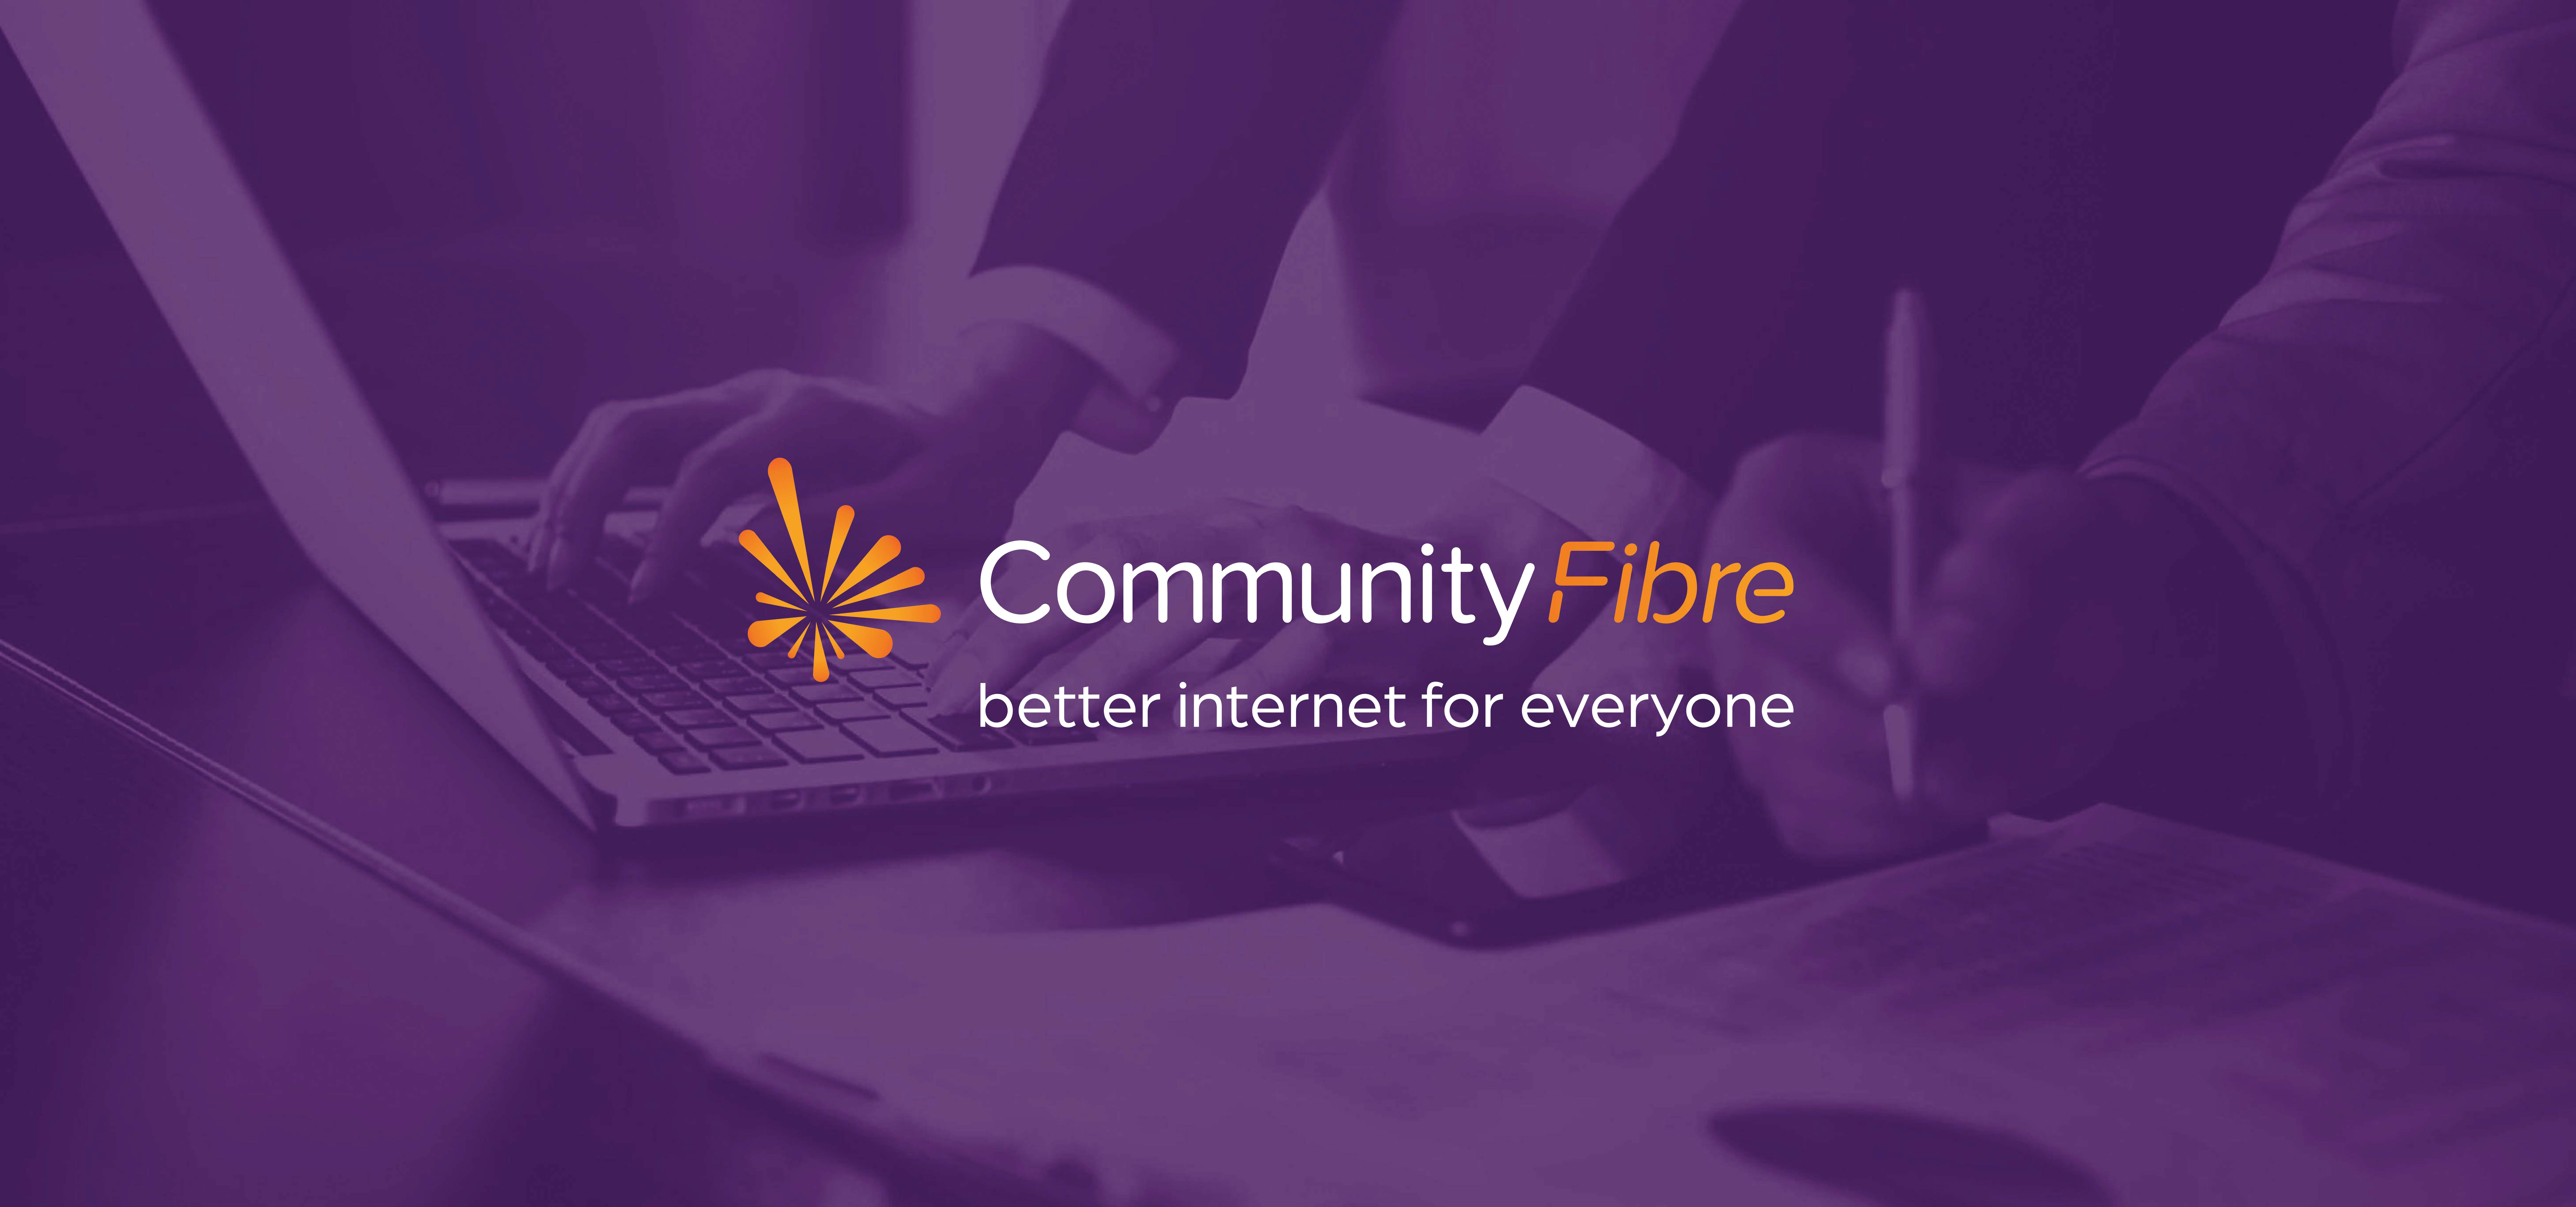 Community Fibre scales up offerings for London businesses